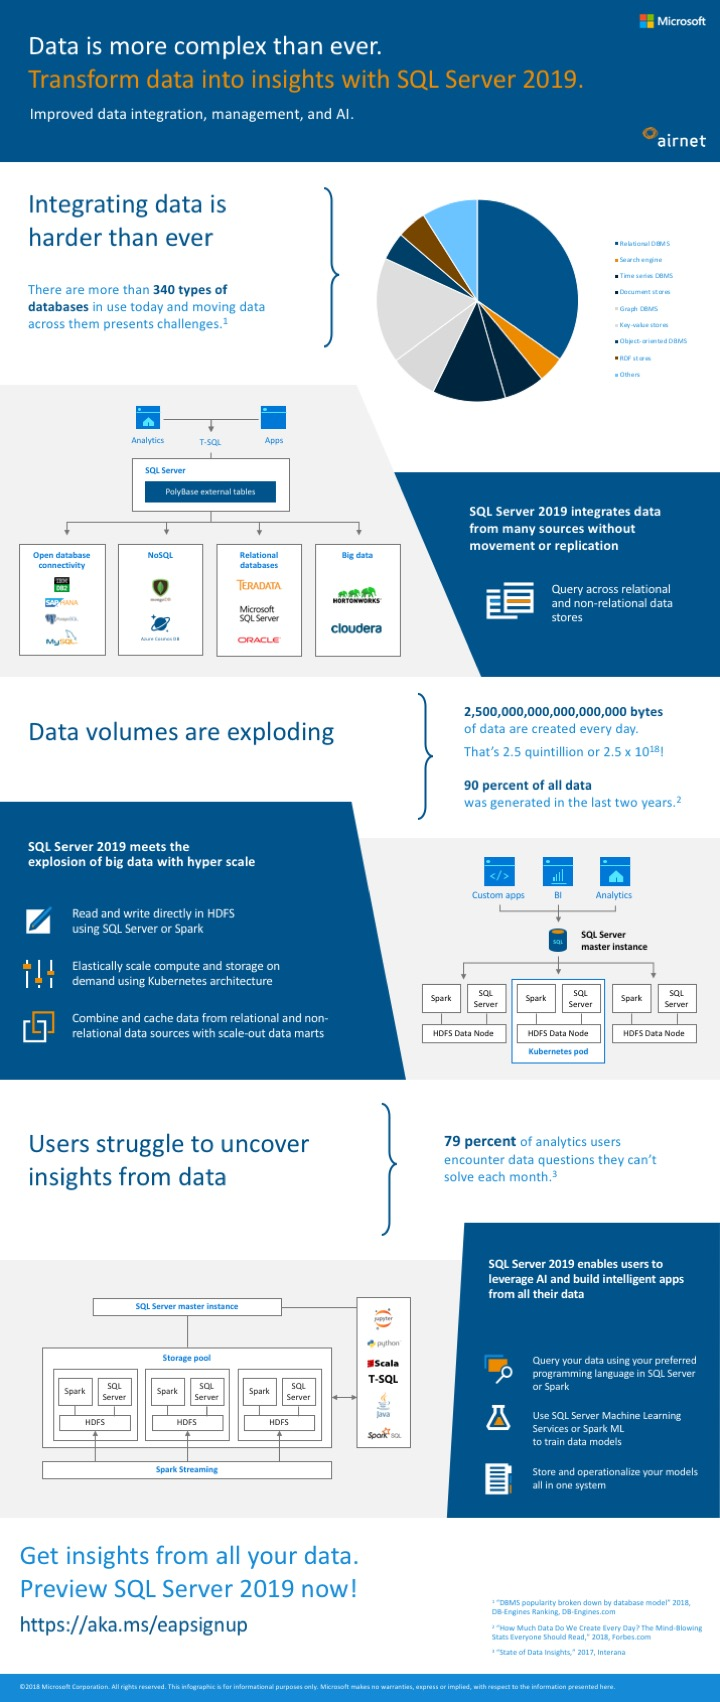 SQL-Server-2019-big-data-Infographic.jpg